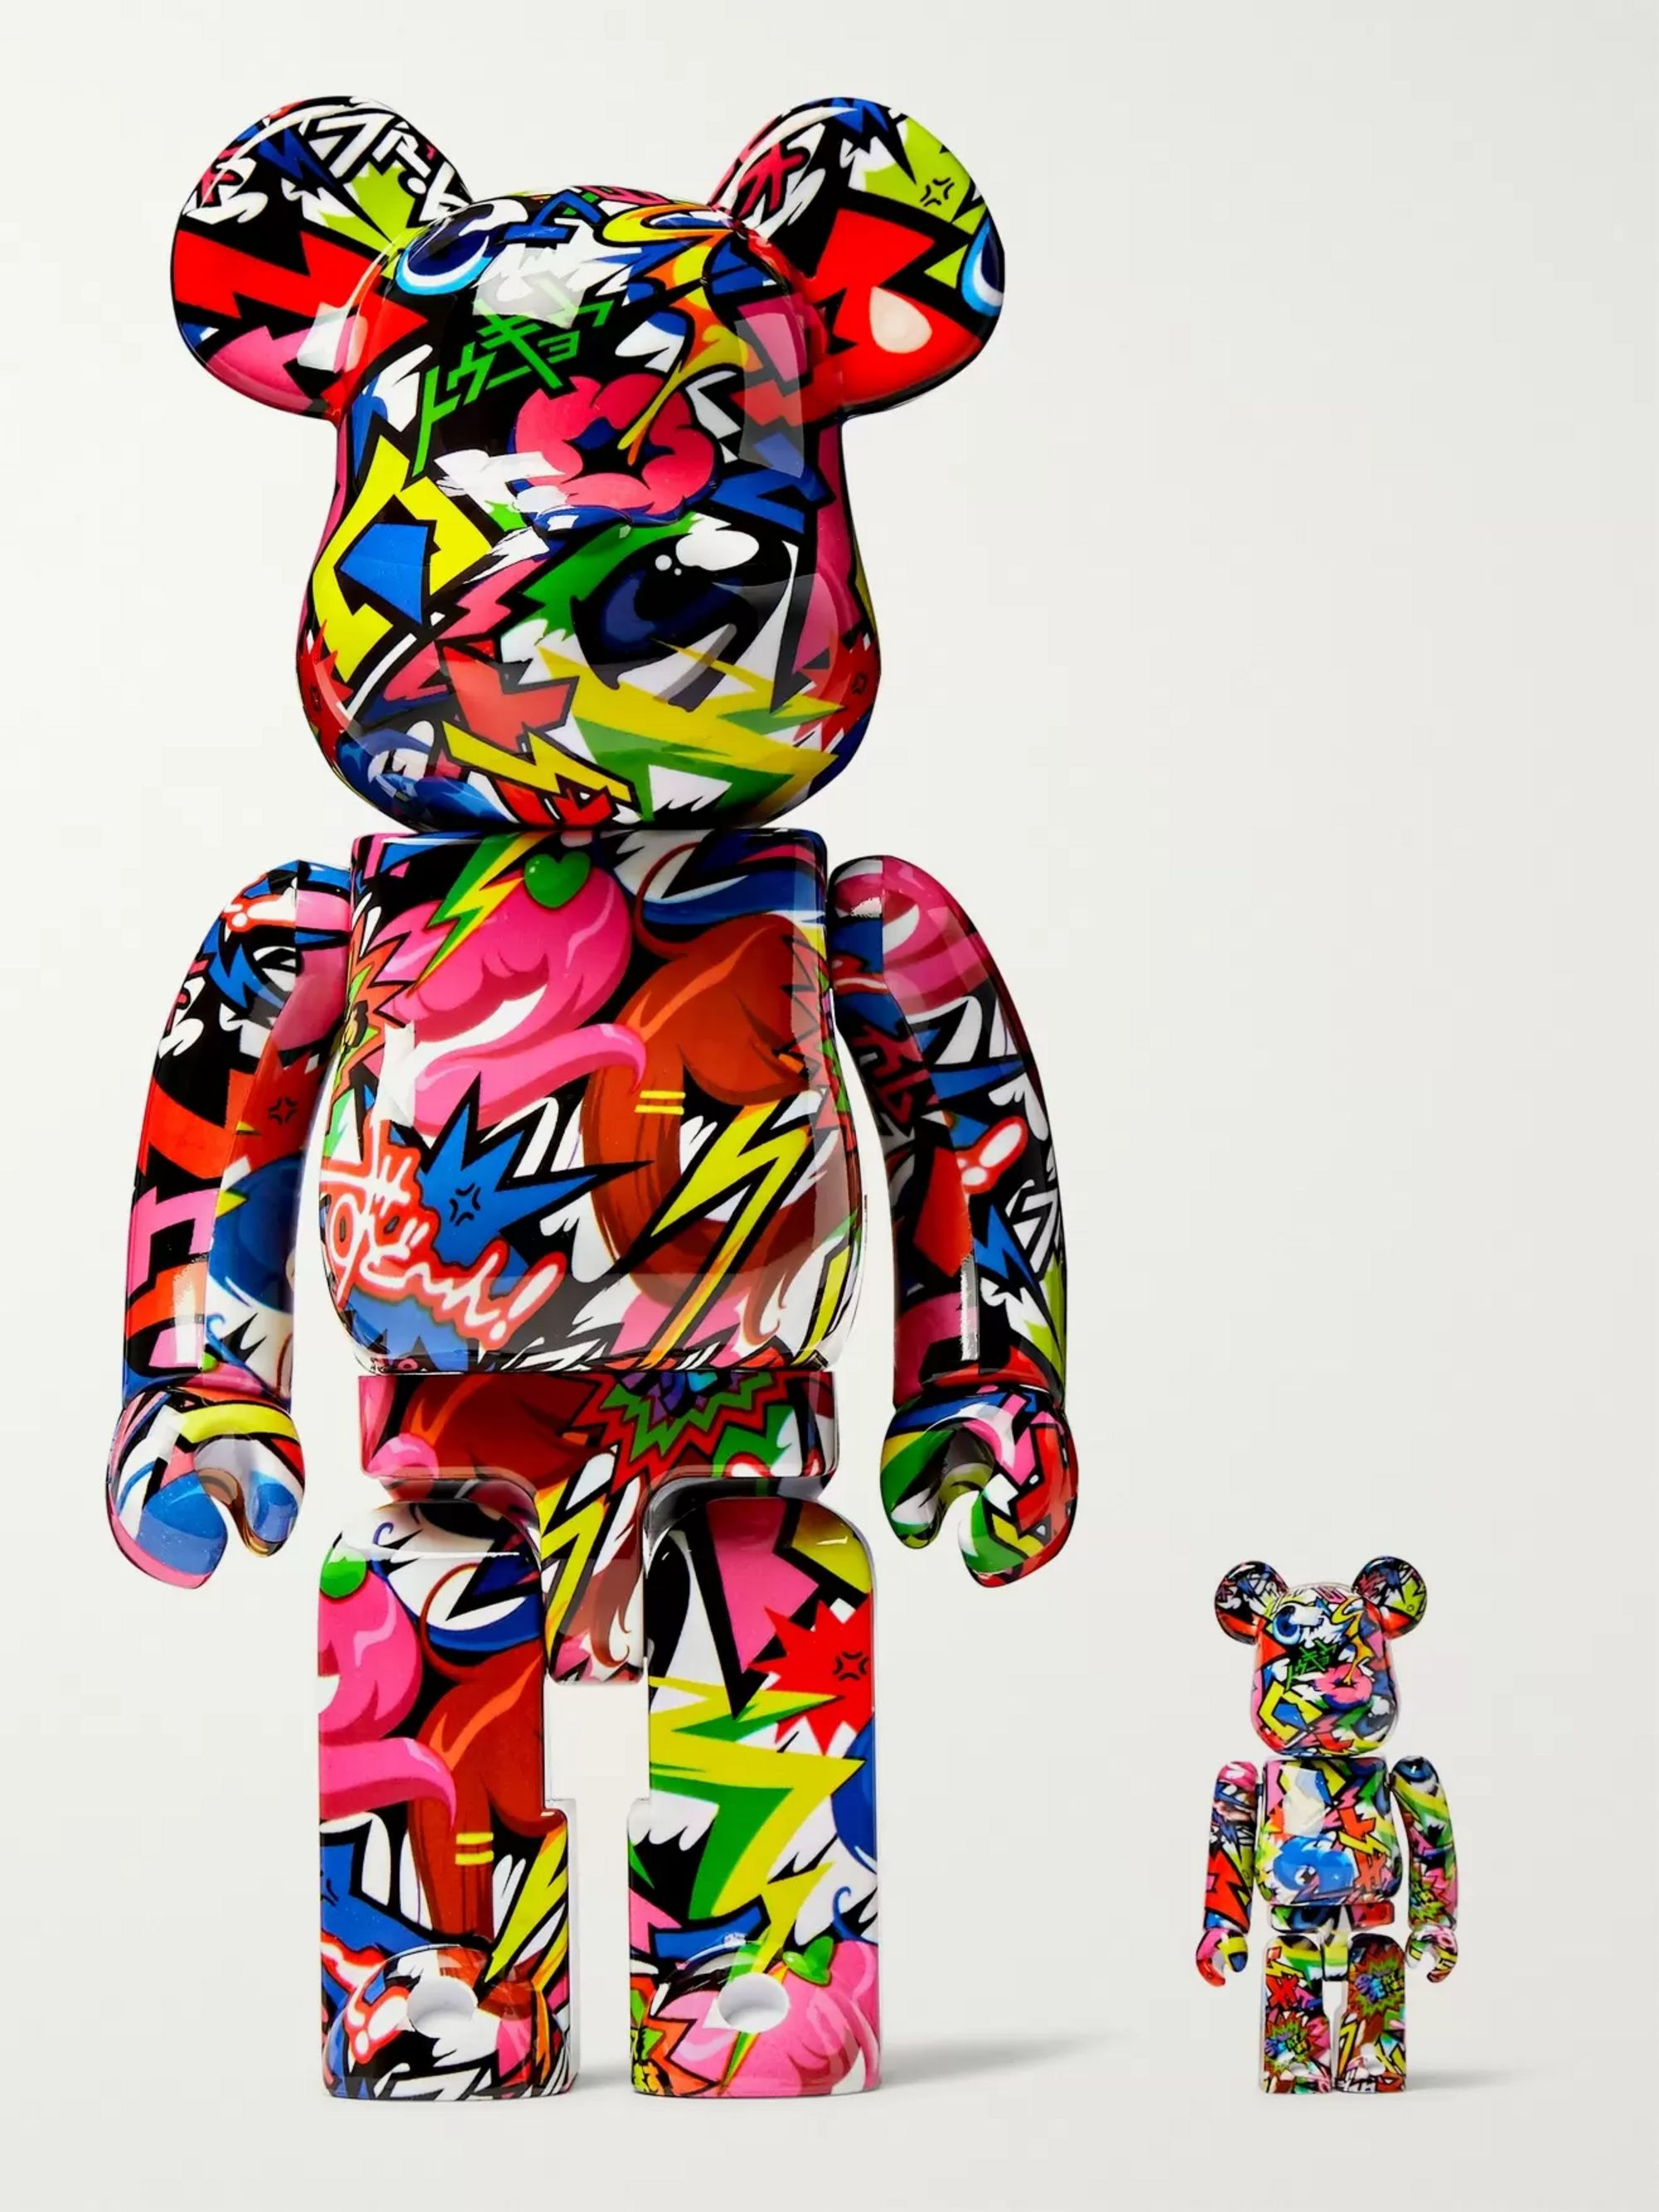 BE@RBRICK 100% + 400% Fantasista Utamaro Figurines Set